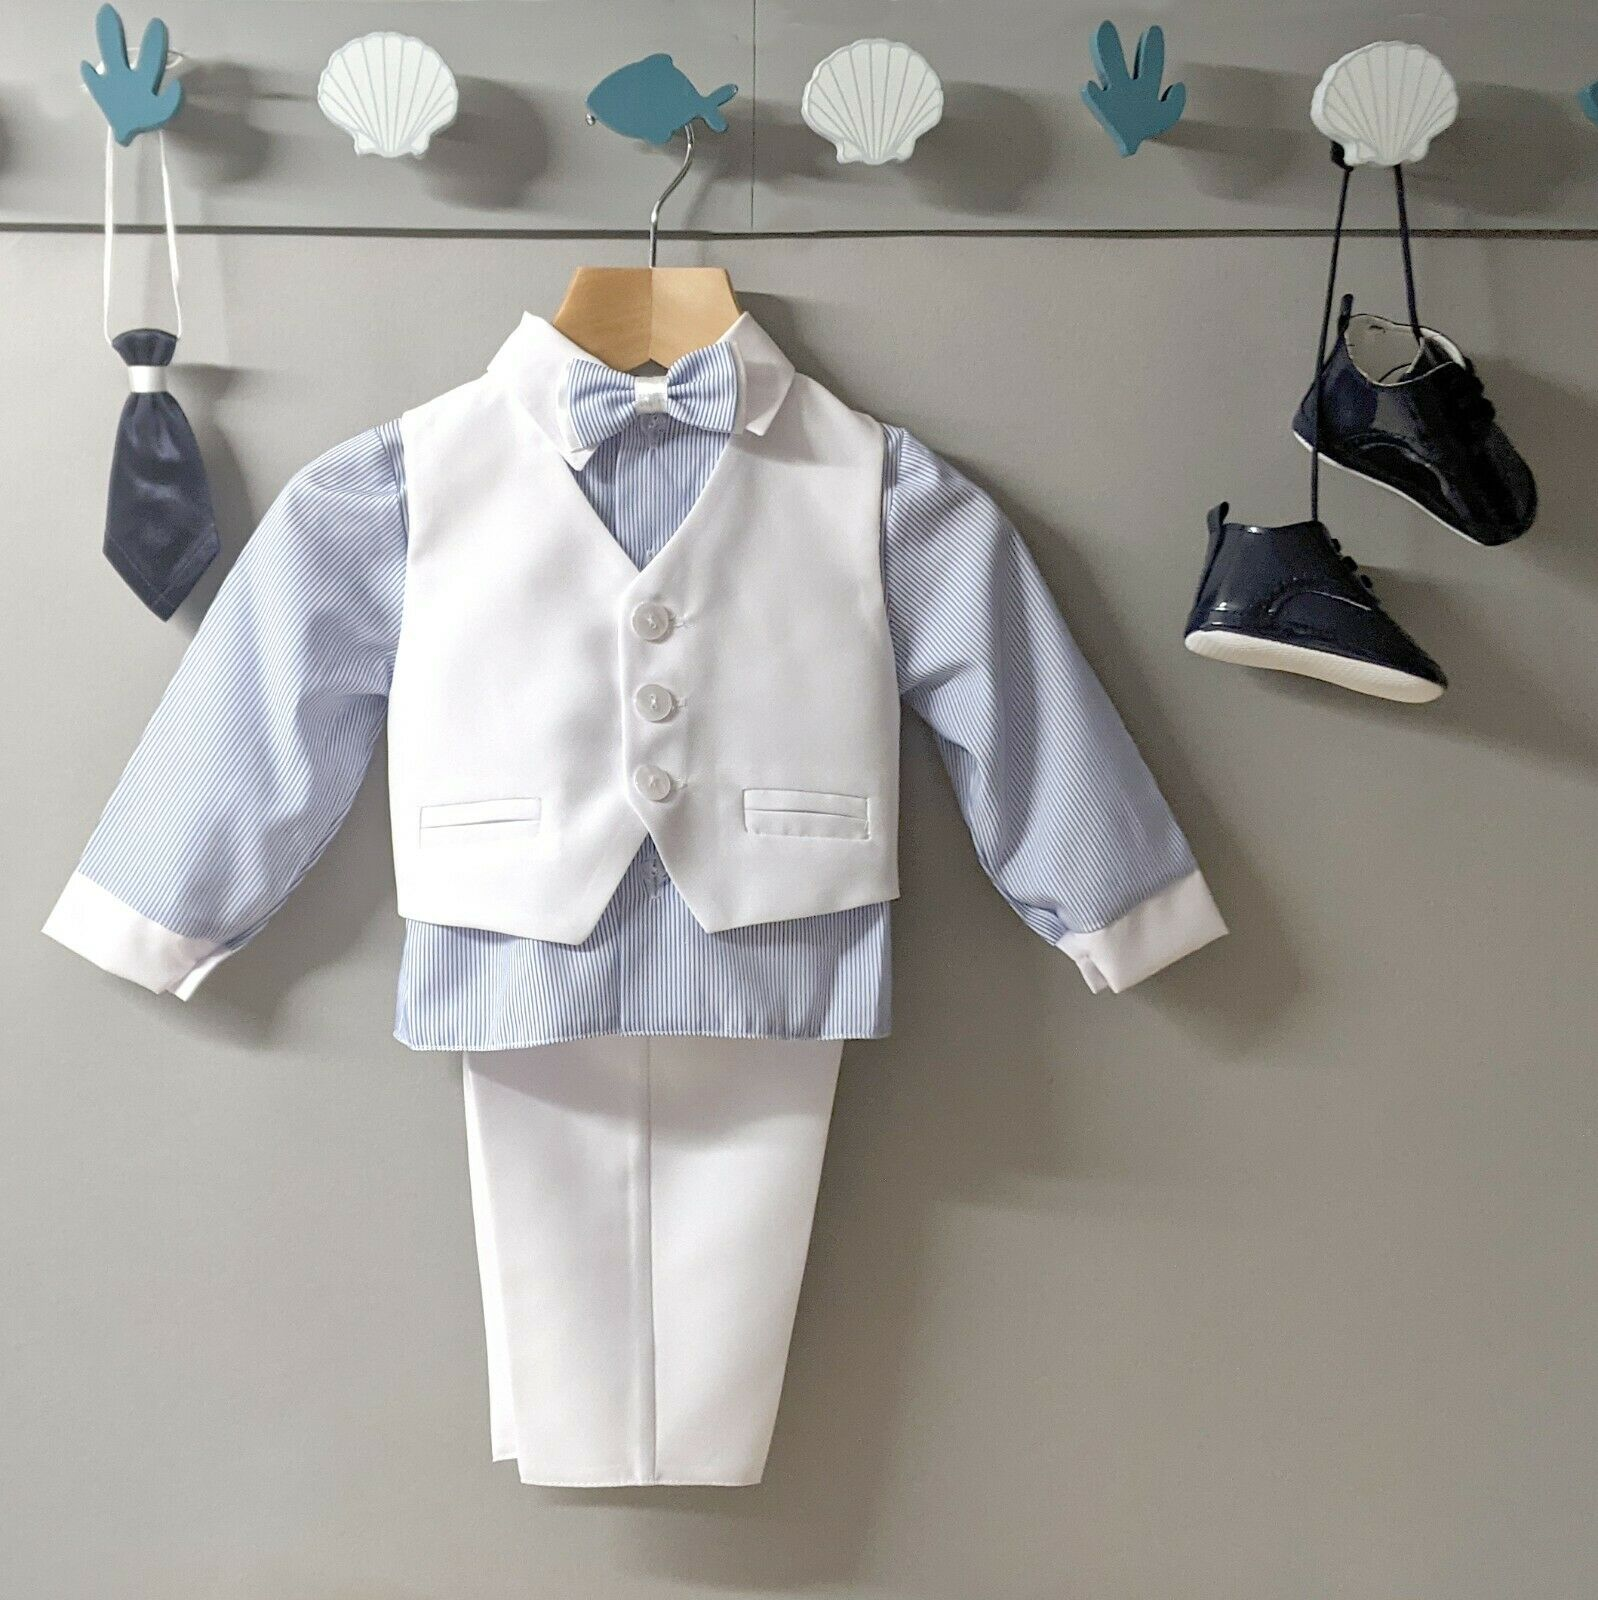 Excellent Wedding Outfits For Baby Boy Images - Wedding Ideas ...